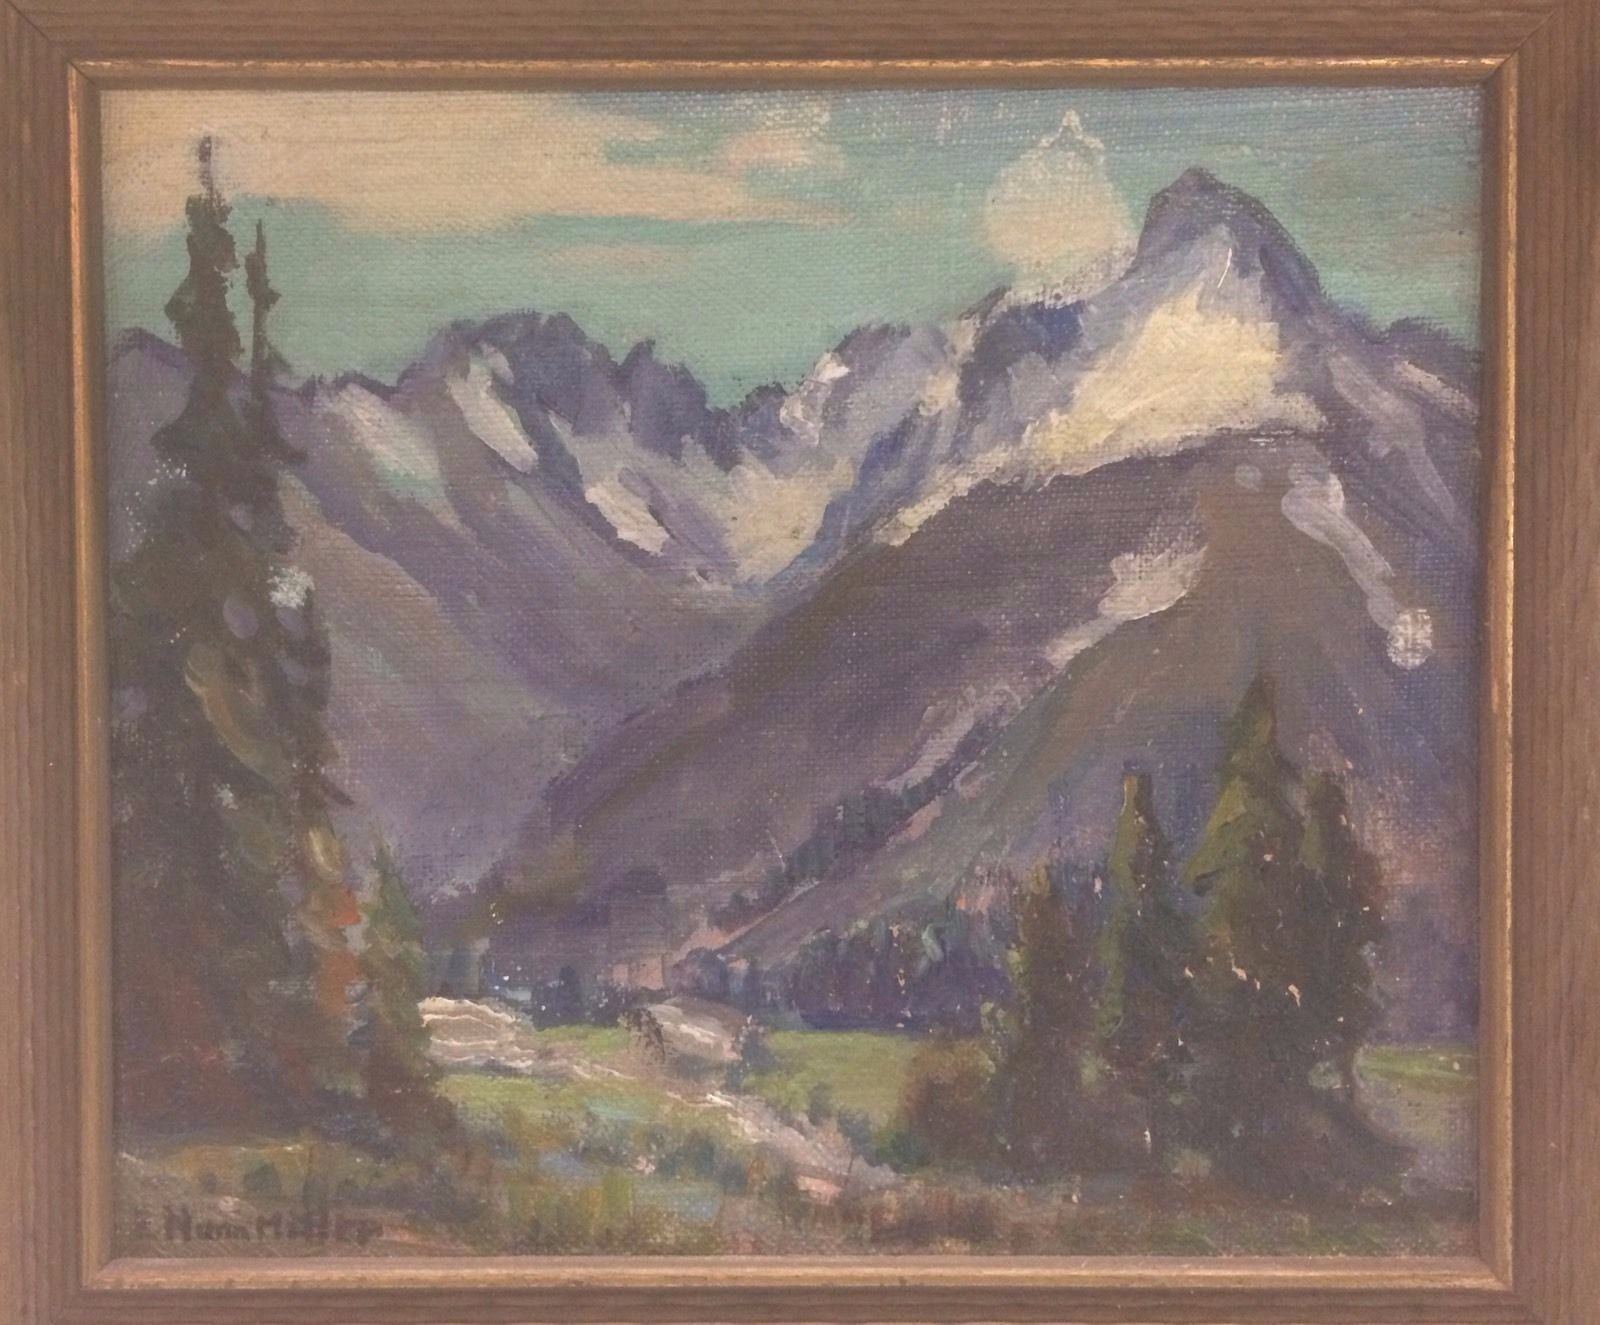 Small Vintage Oil Painting On Masonite By Listed Artist Evylena Nunn Miller B 1888 D 1966 Signed Lower Left E N Painting Mountain Landscape Painting Art